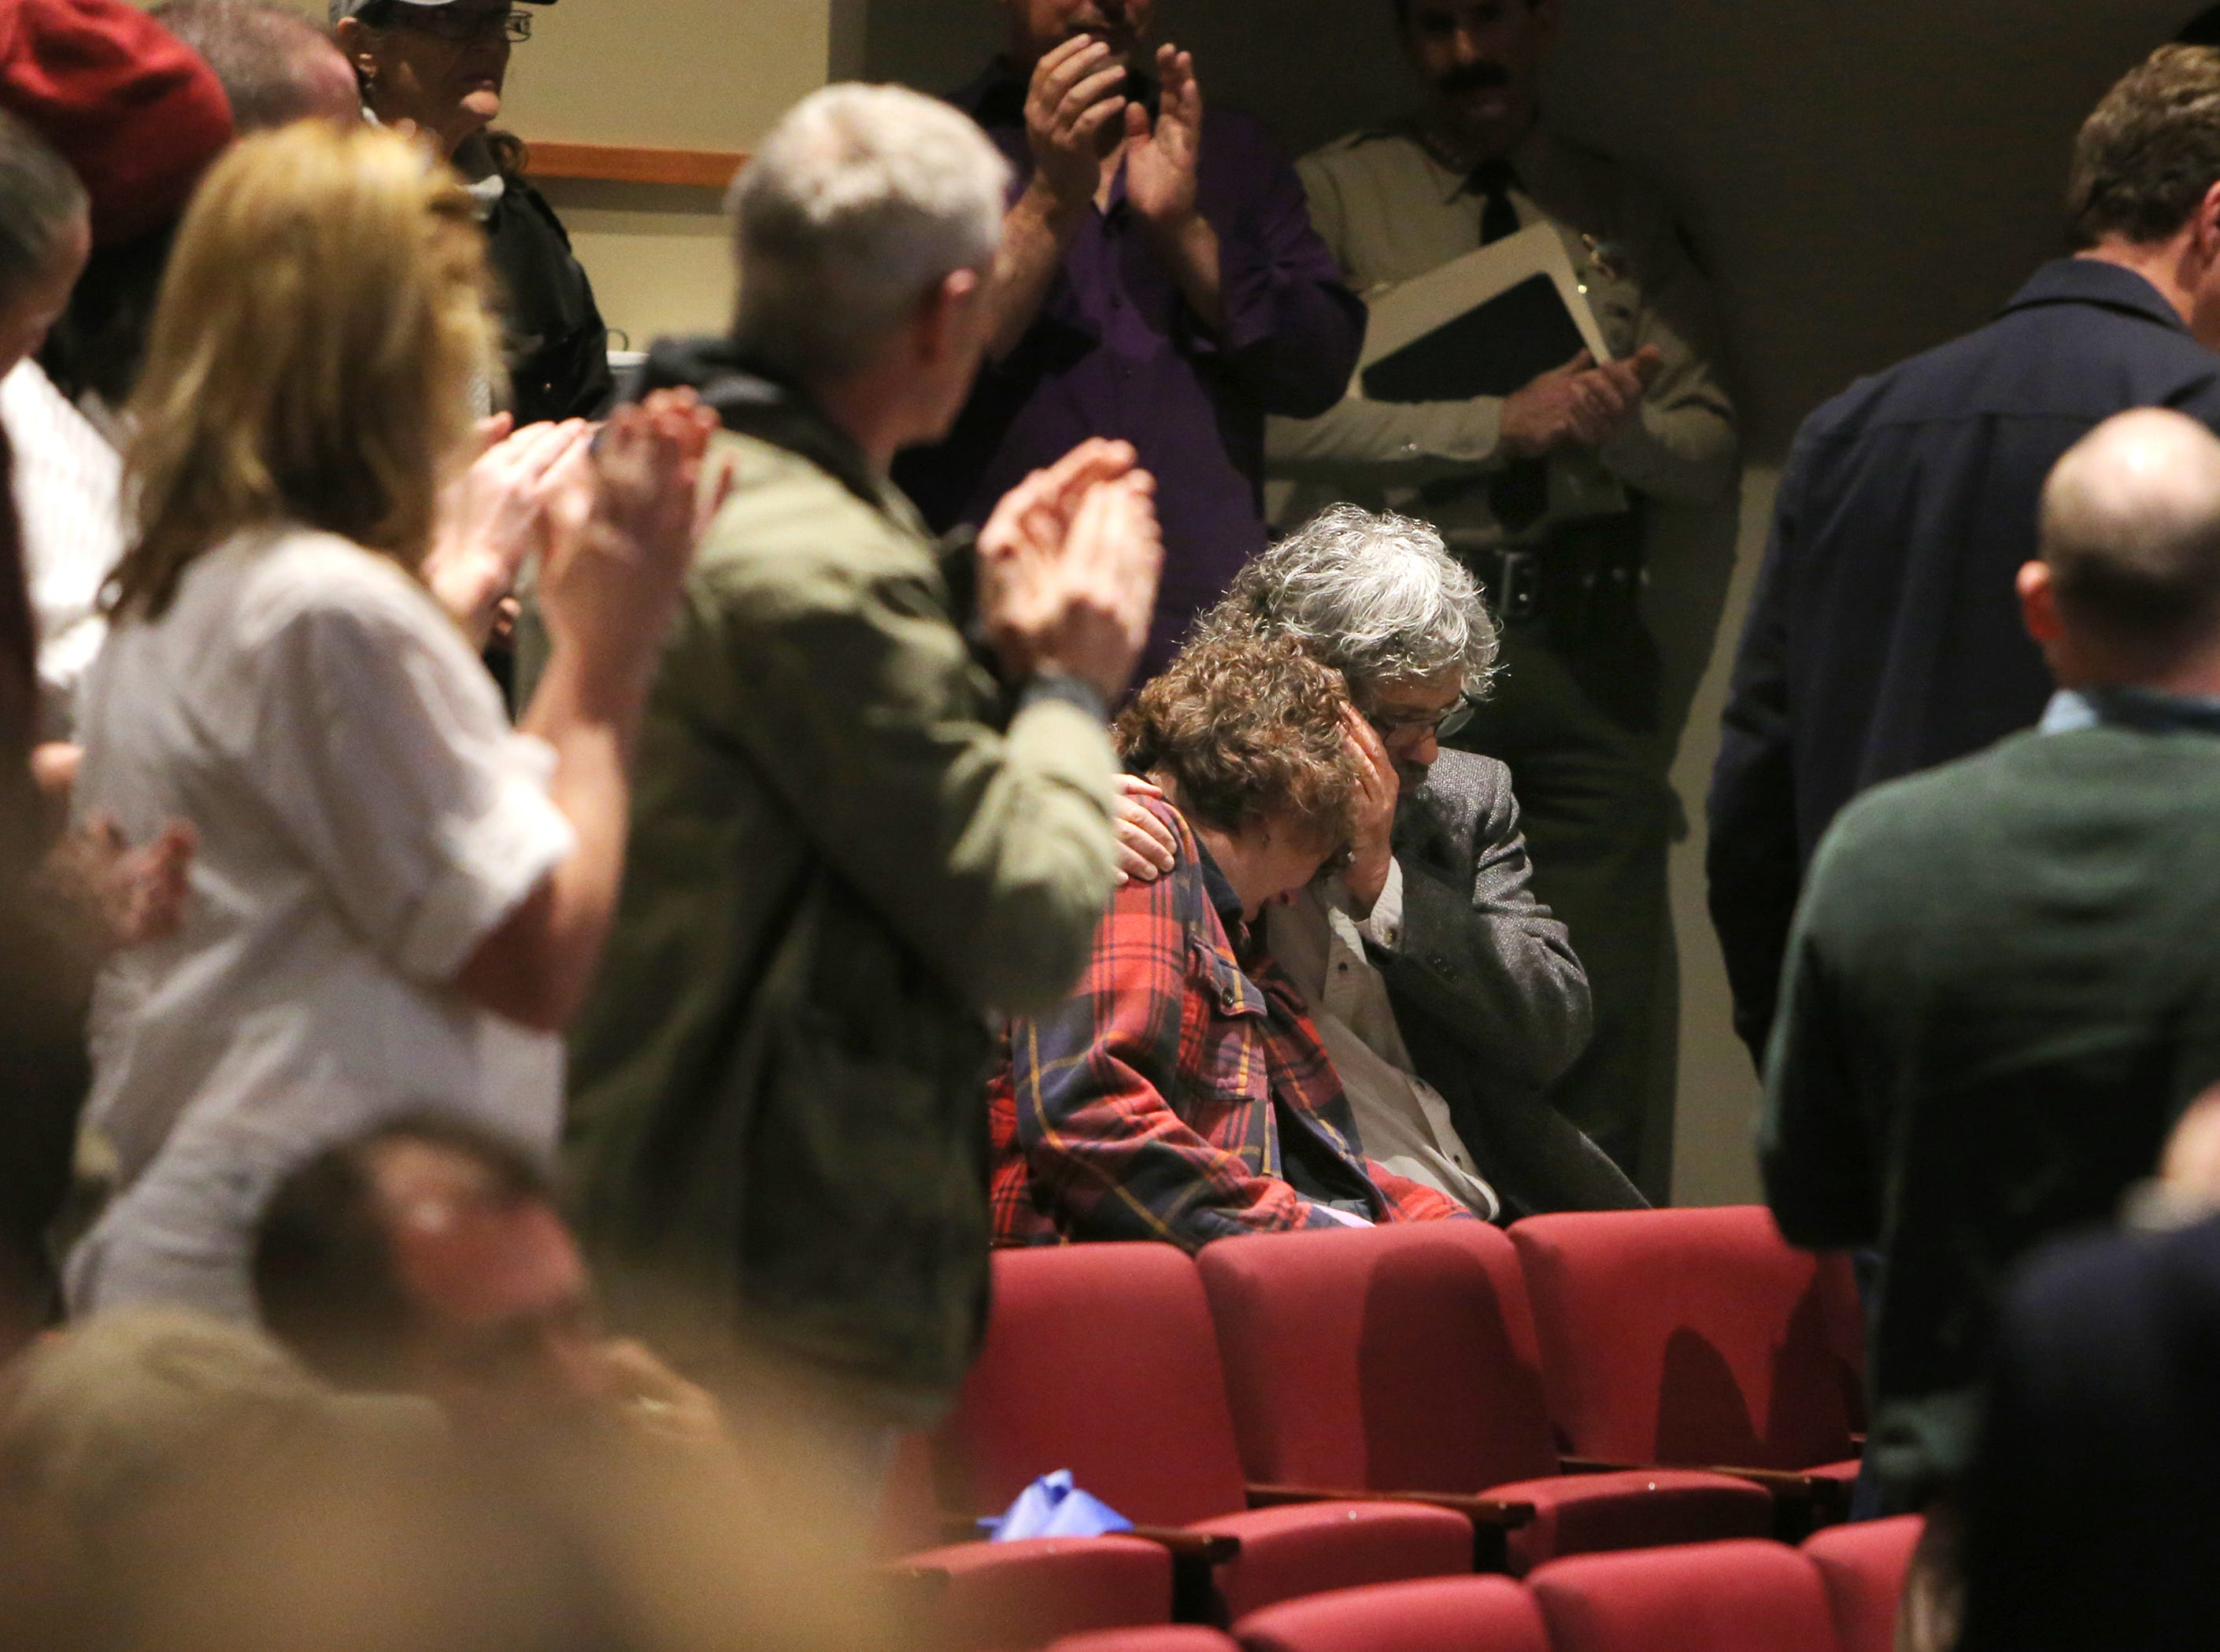 Marc Orfanos consoles his wife, Susan, after she spoke about their son Telemachus Orfanos during a forum on  gun violence Sunday at Westlake High School. Telemachus Orfanos was among the victims of the shooting at Borderline Bar & Grill in Thousand Oaks.